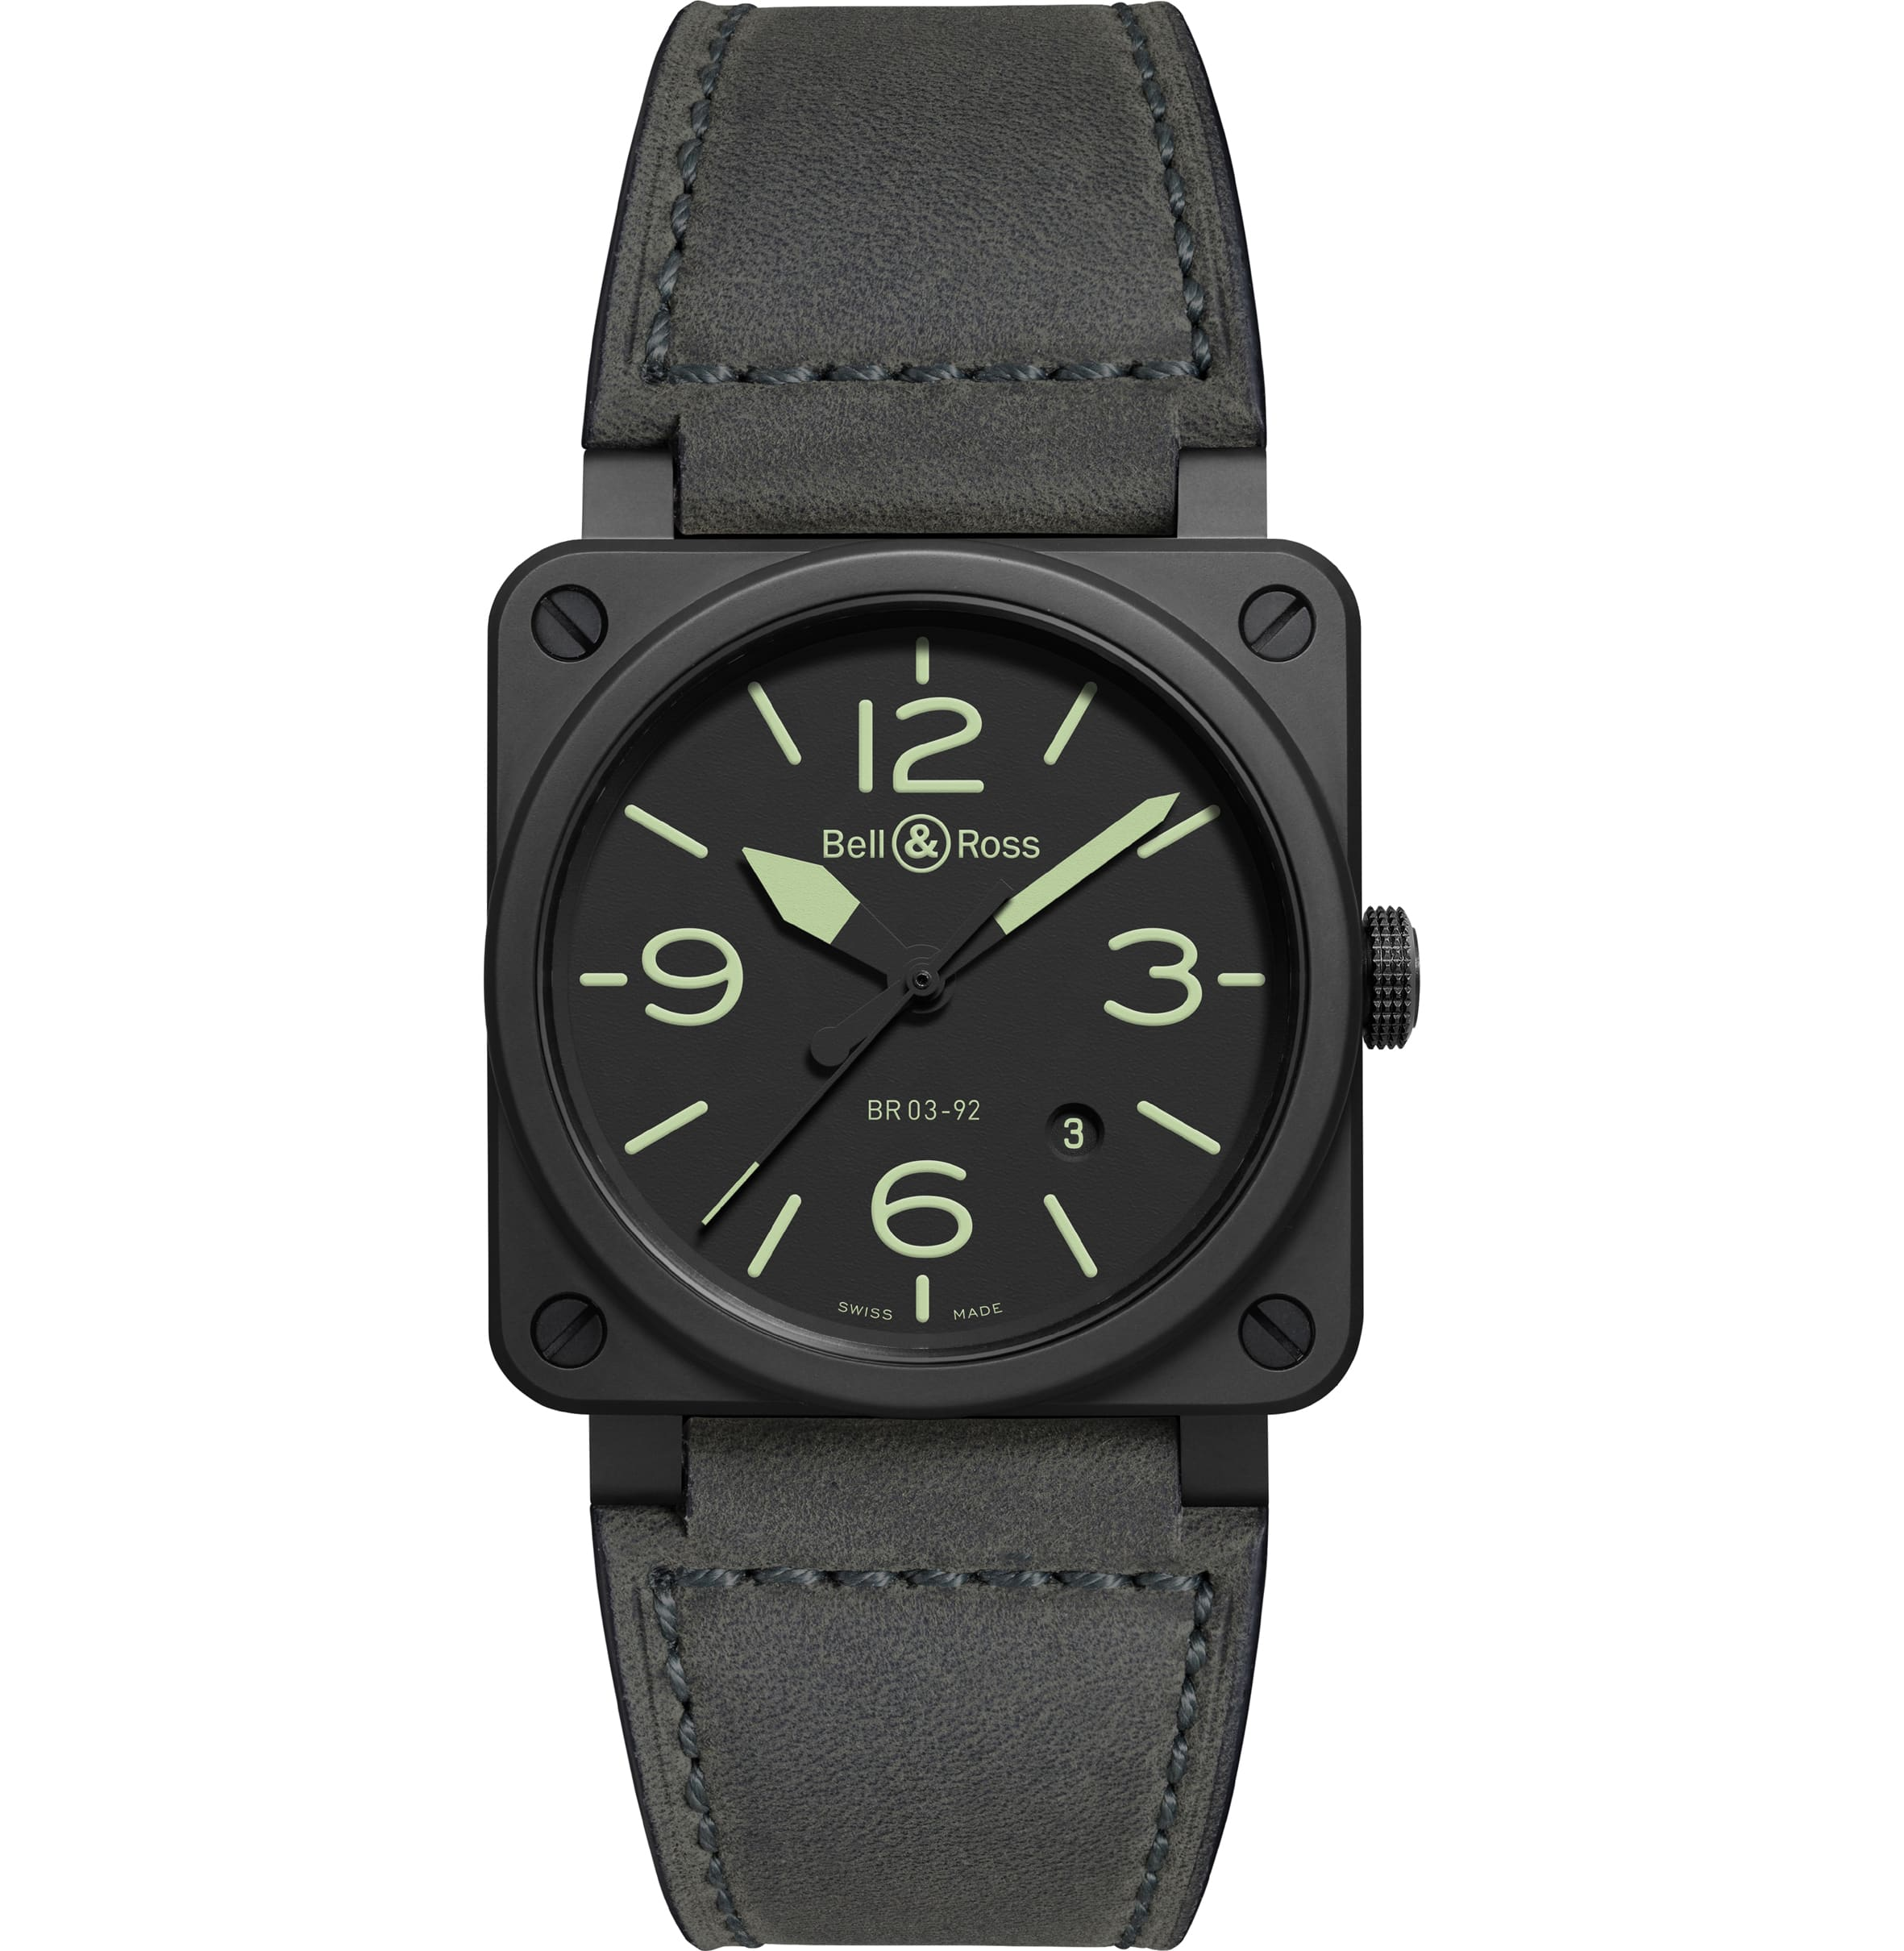 De 42 mm BR03-92 Nightlum is een comfortabel dragend cockpitsinstrument